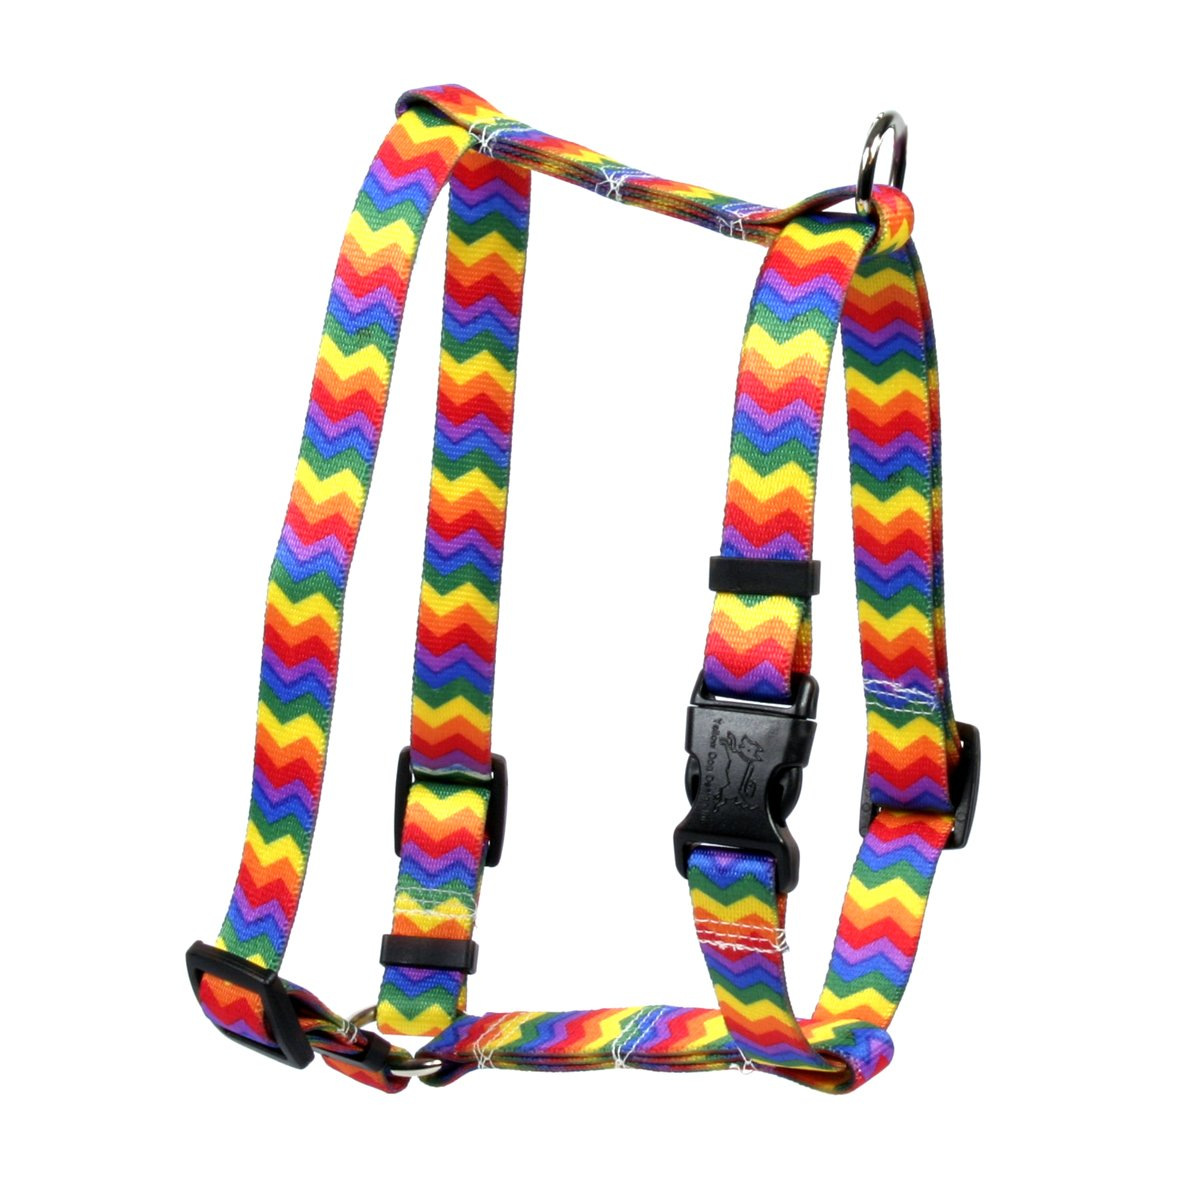 Yellow Dog Design Rainbow Chevron Roman H Dog Harness, Small/Medium-3/4 Wide fits Chest of 14 to 20'' by Yellow Dog Design